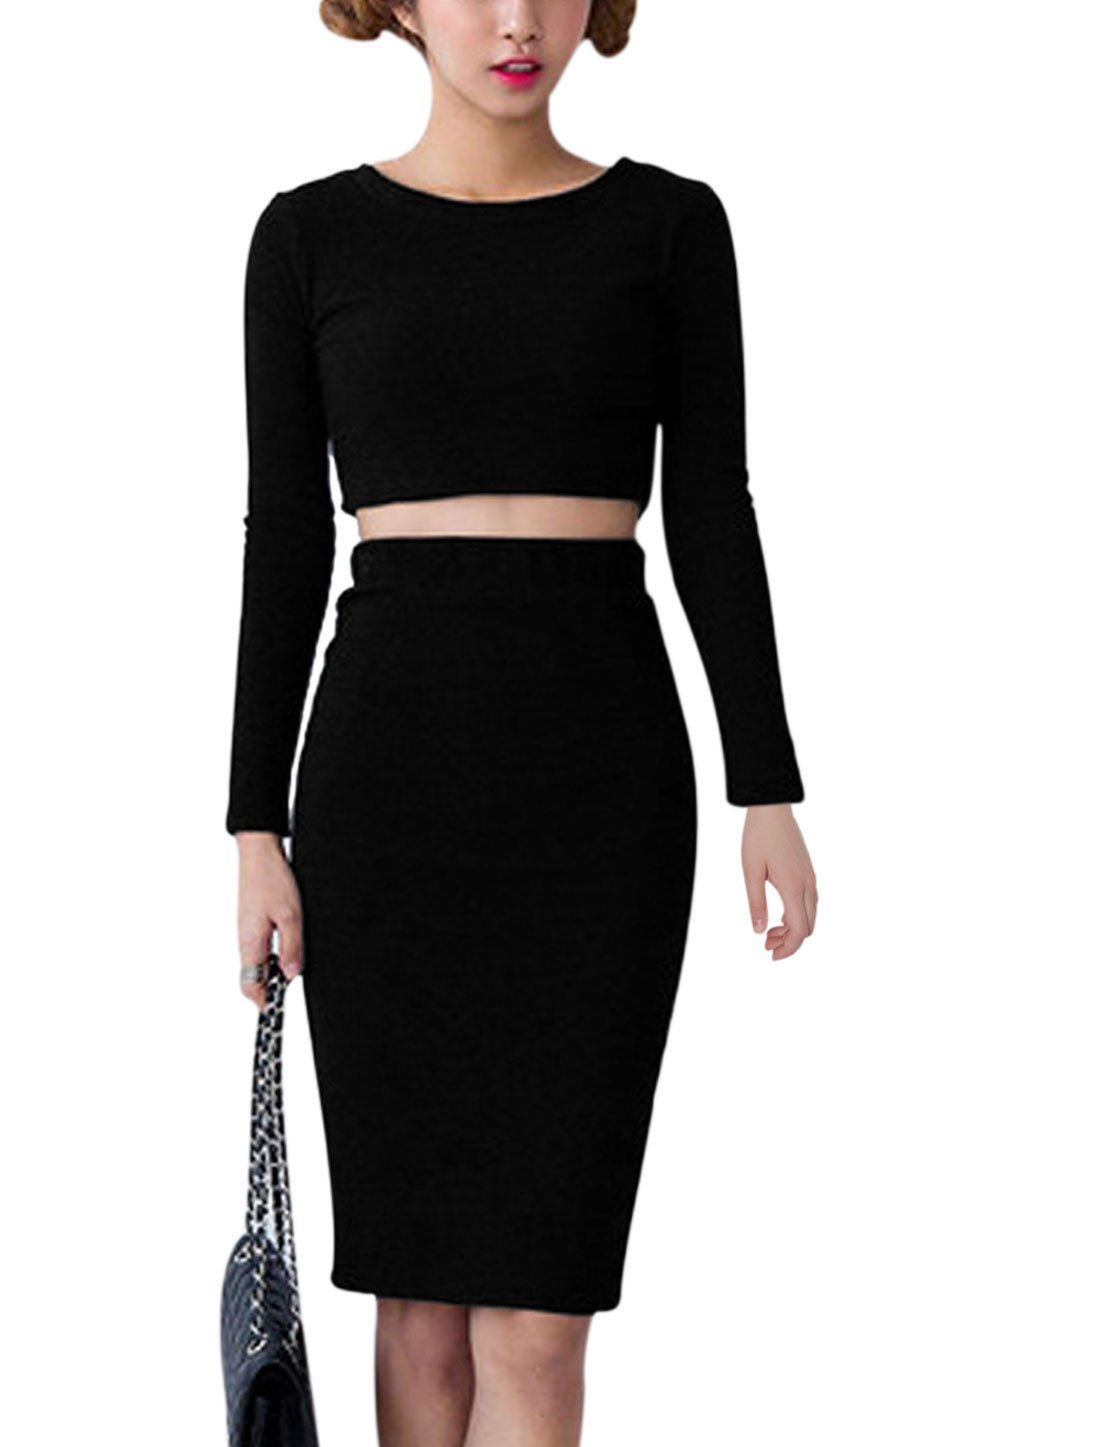 Women Long Sleeve Cropped Top w Elastic Waist Skirt Black S